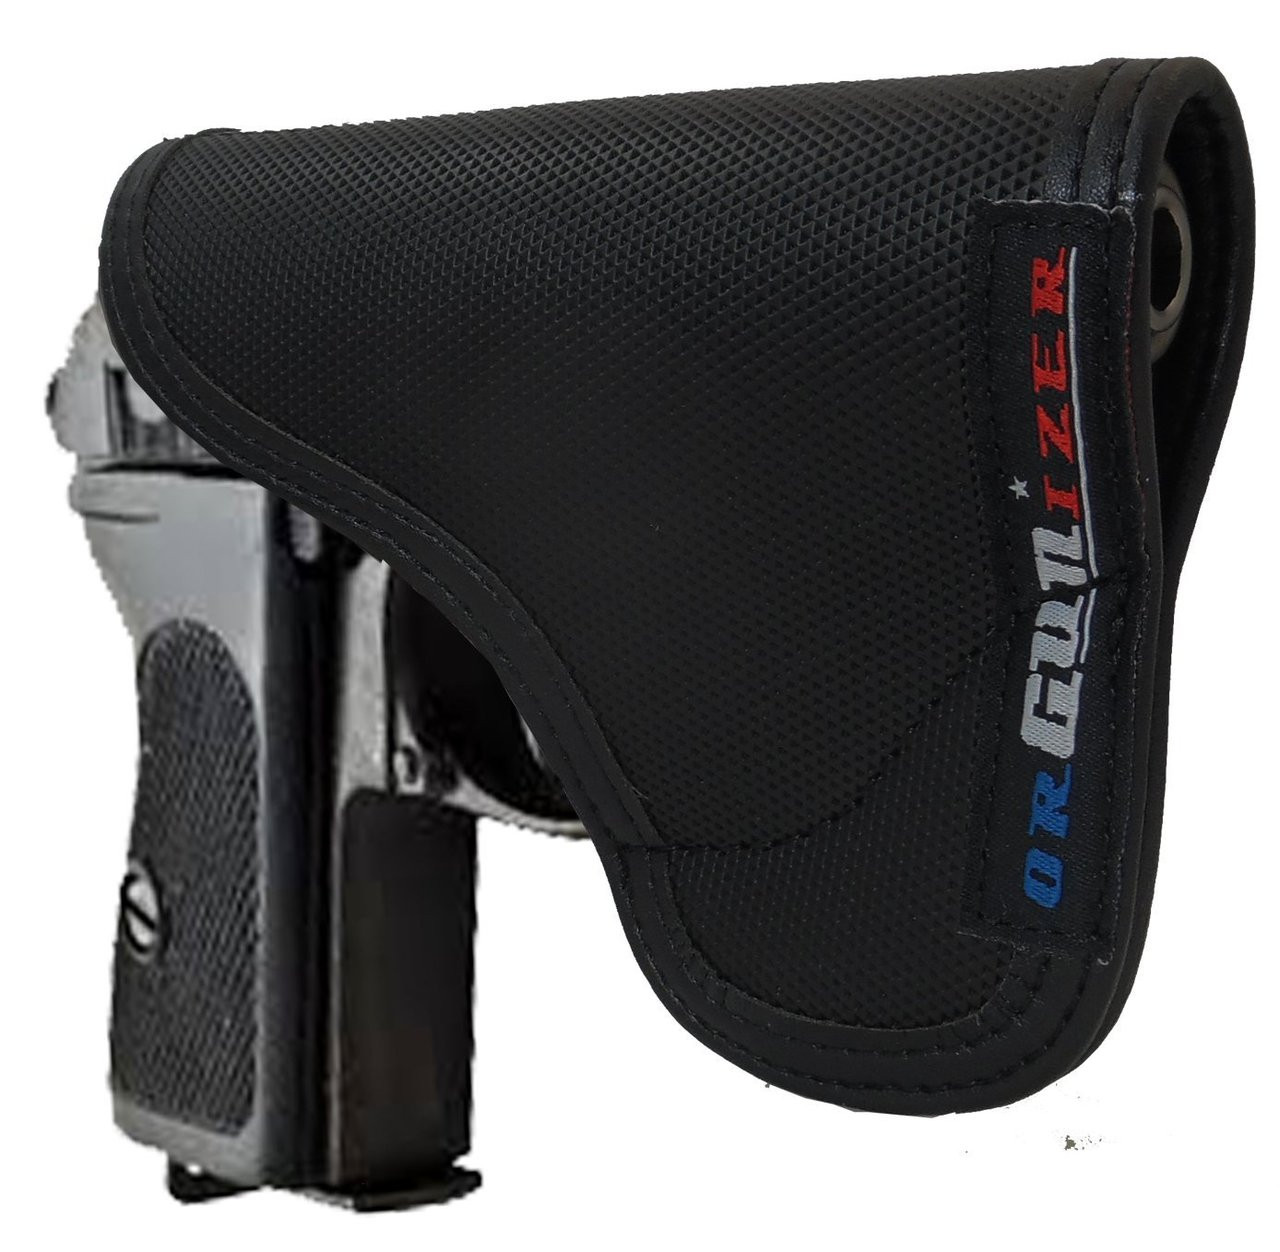 Walther PPK Ambidextrous Custom Fit Leather Trimmed orGUNizer Pocket Holster by Garrison Grip (C)